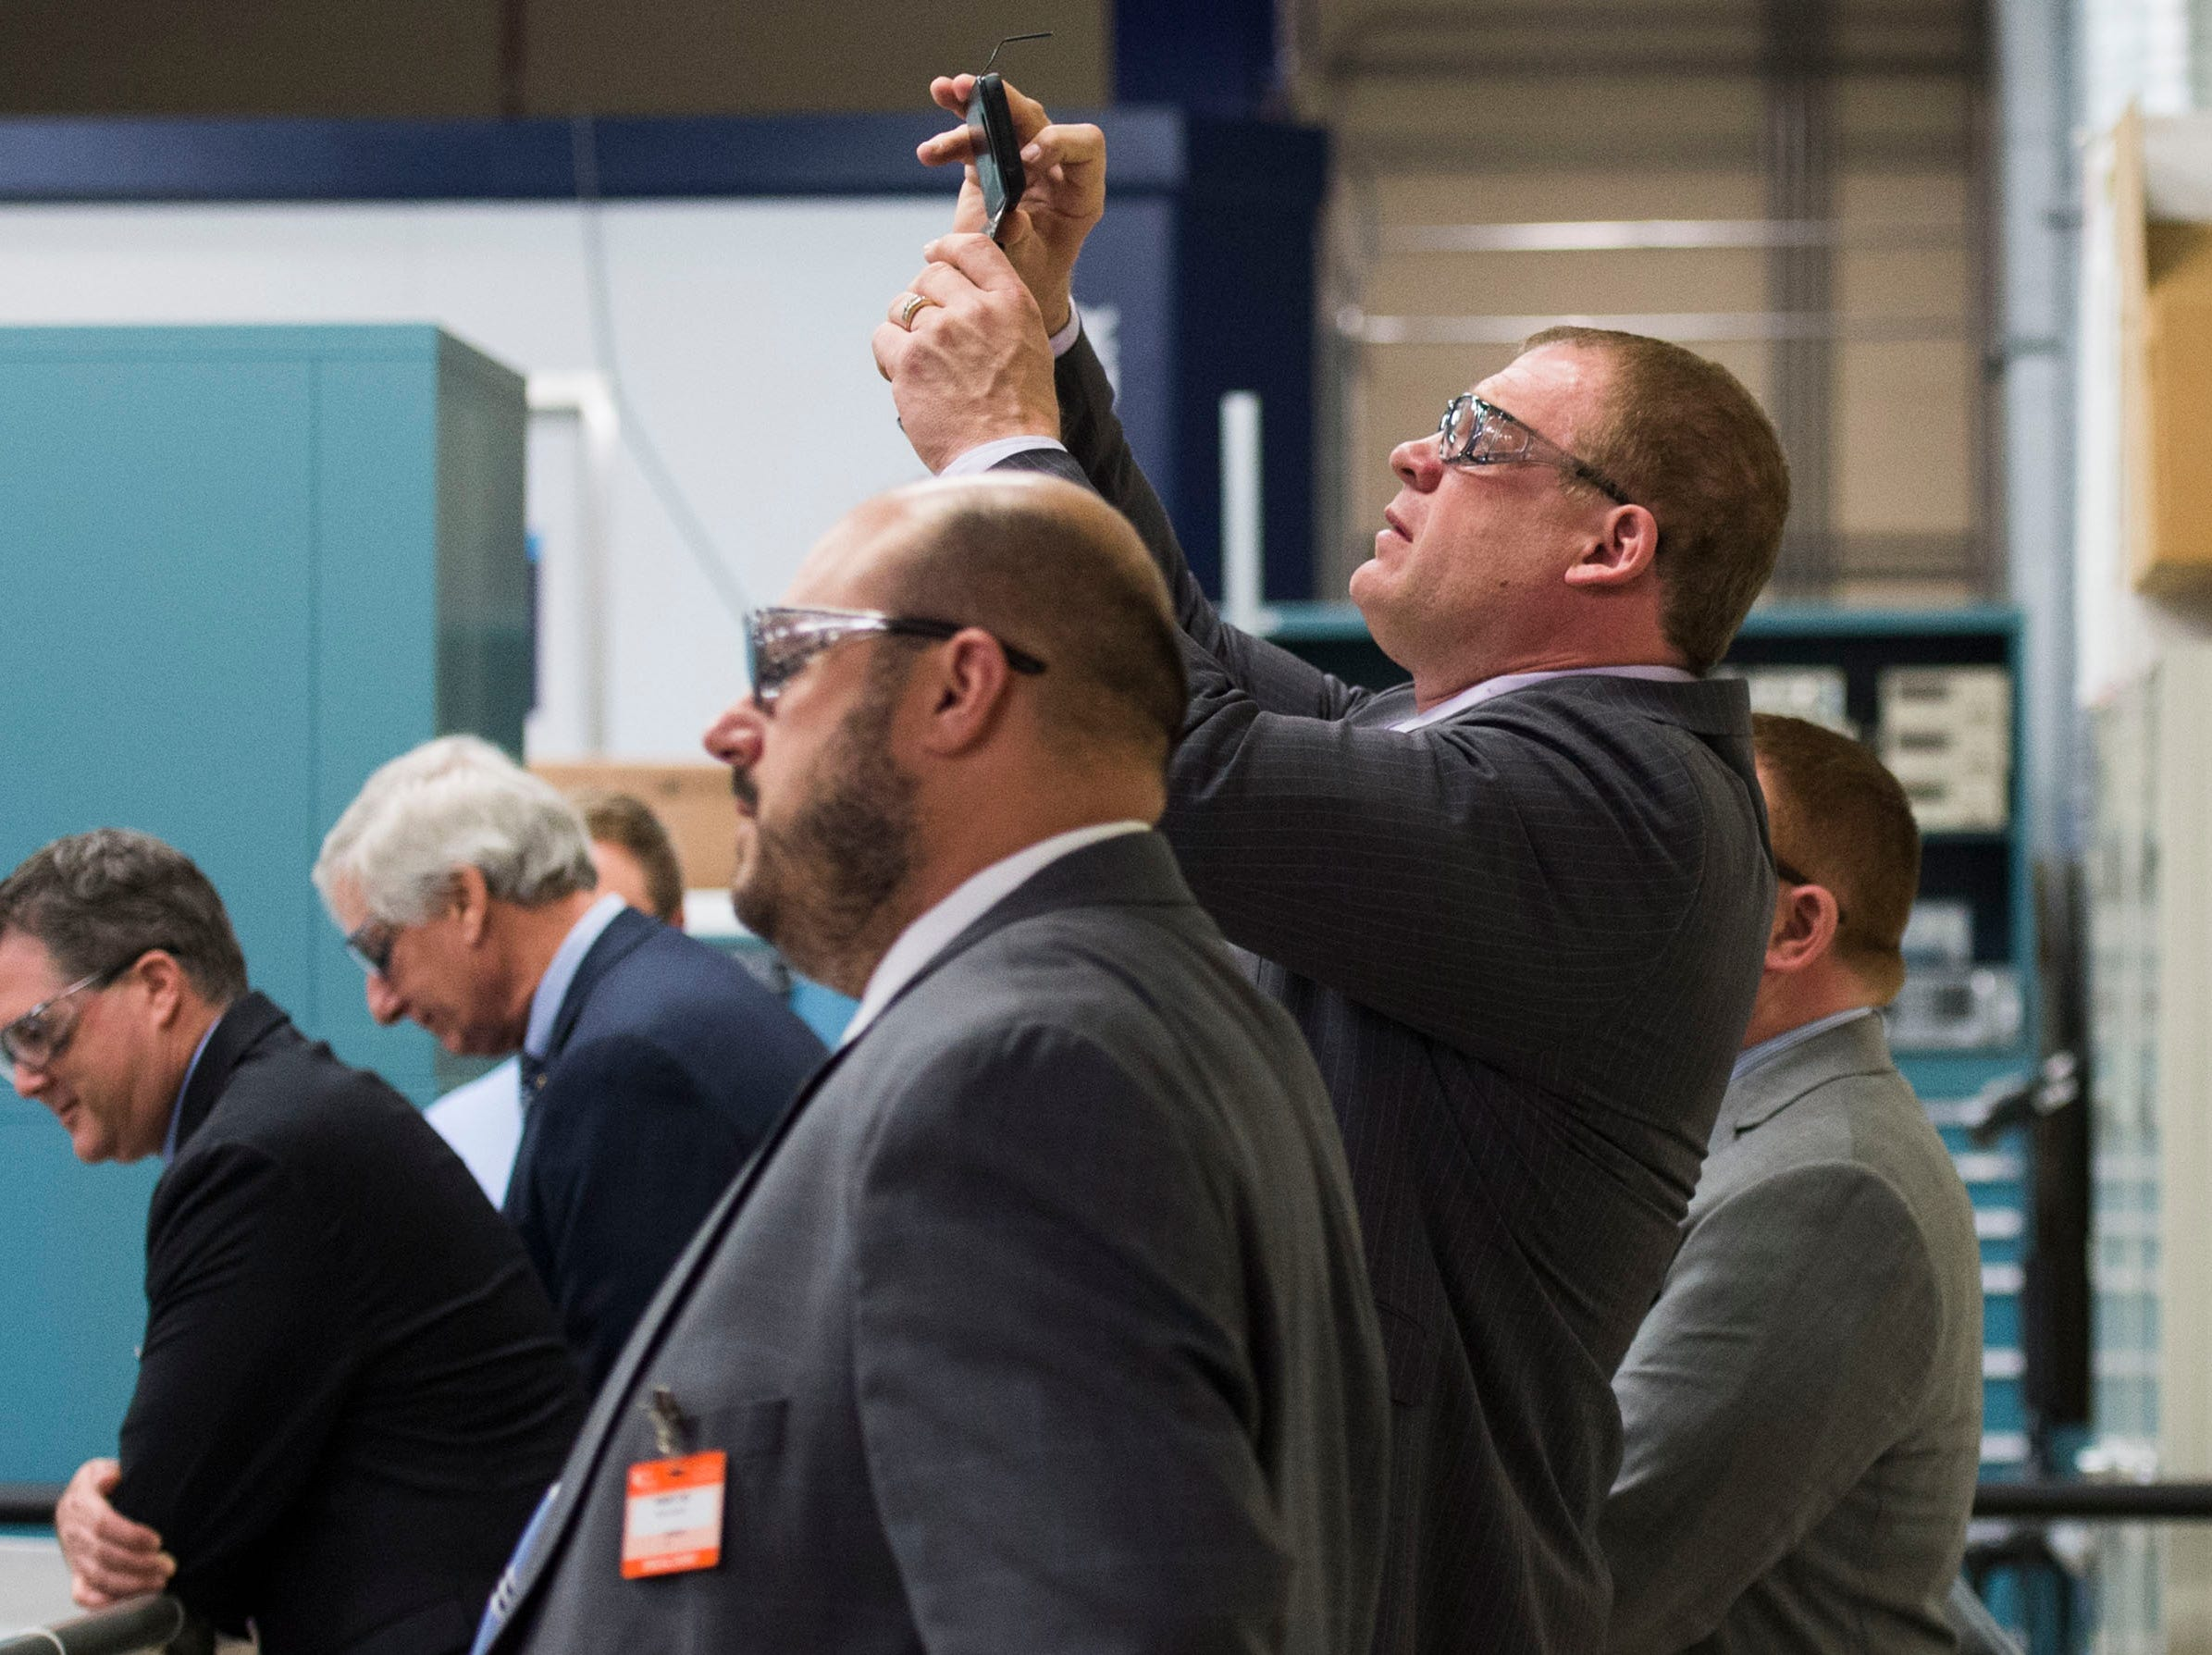 Knox County Mayor Glenn Jacobs takes a photo during a tour at Oak Ridge National Laboratory's Manufacturing Demonstration Facility in Knoxville Tuesday, Dec. 4, 2018.